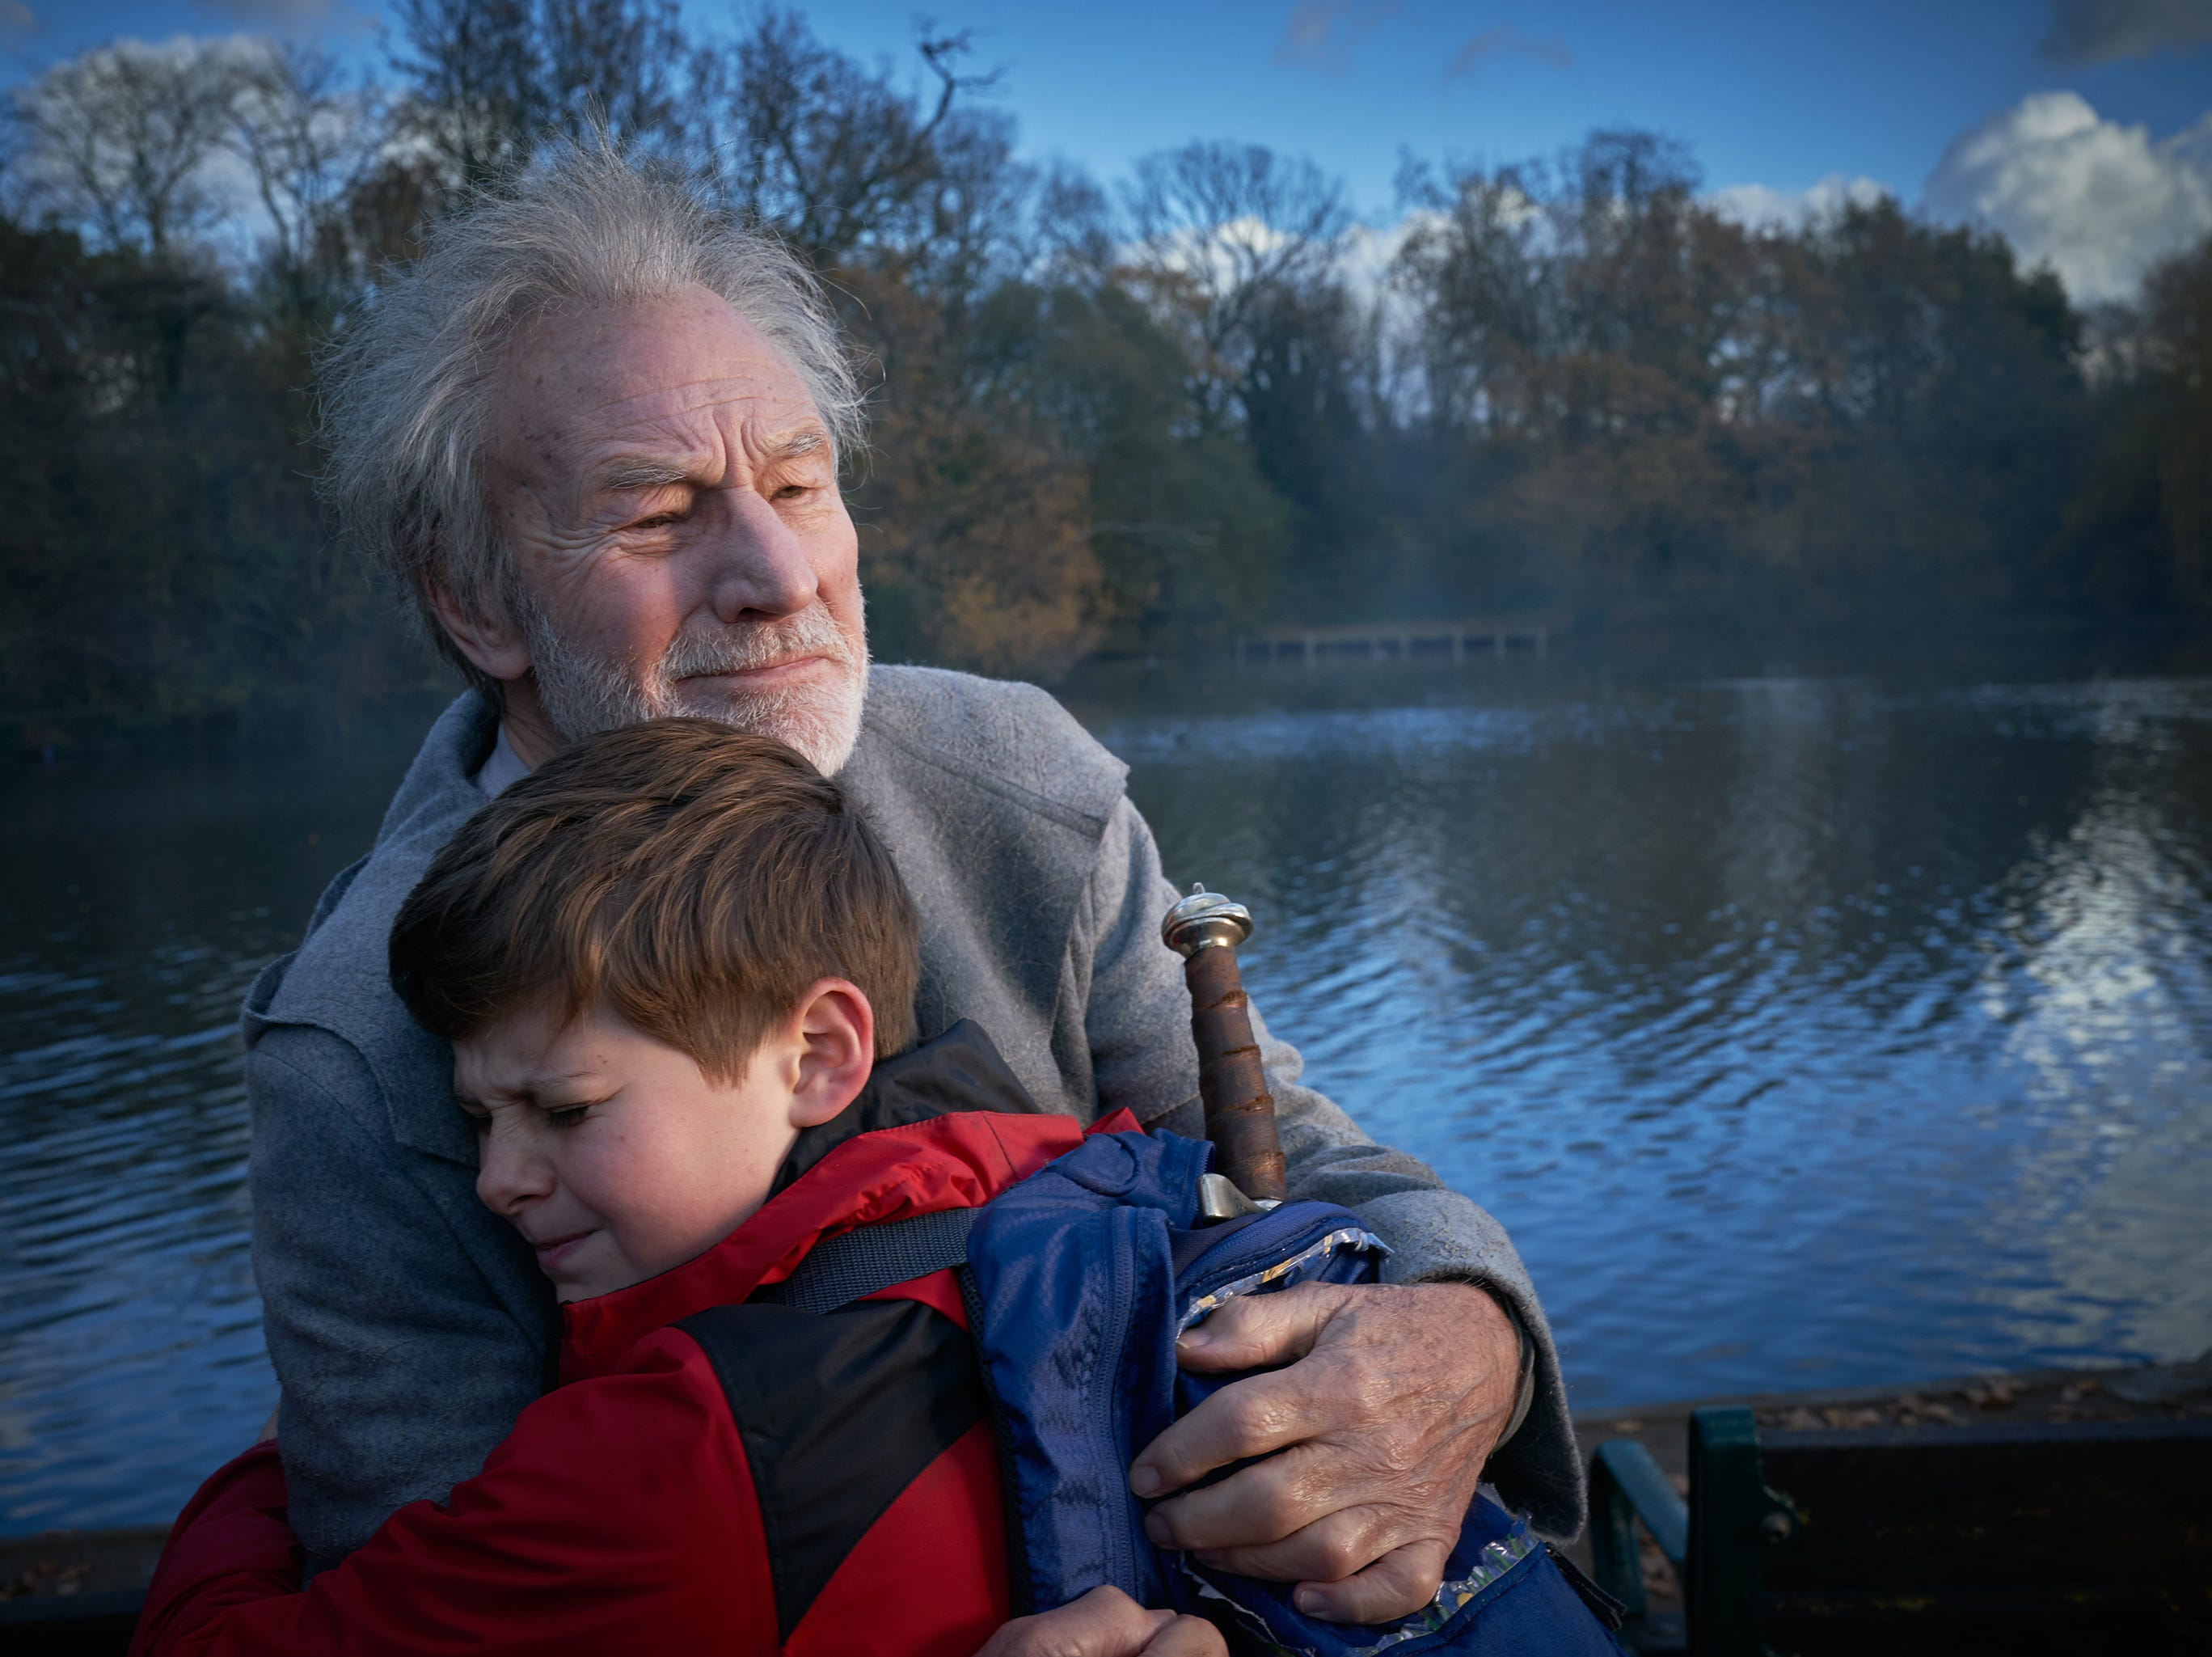 'The Kid Who Would Be King' review: What ages will like it? And is it any good?